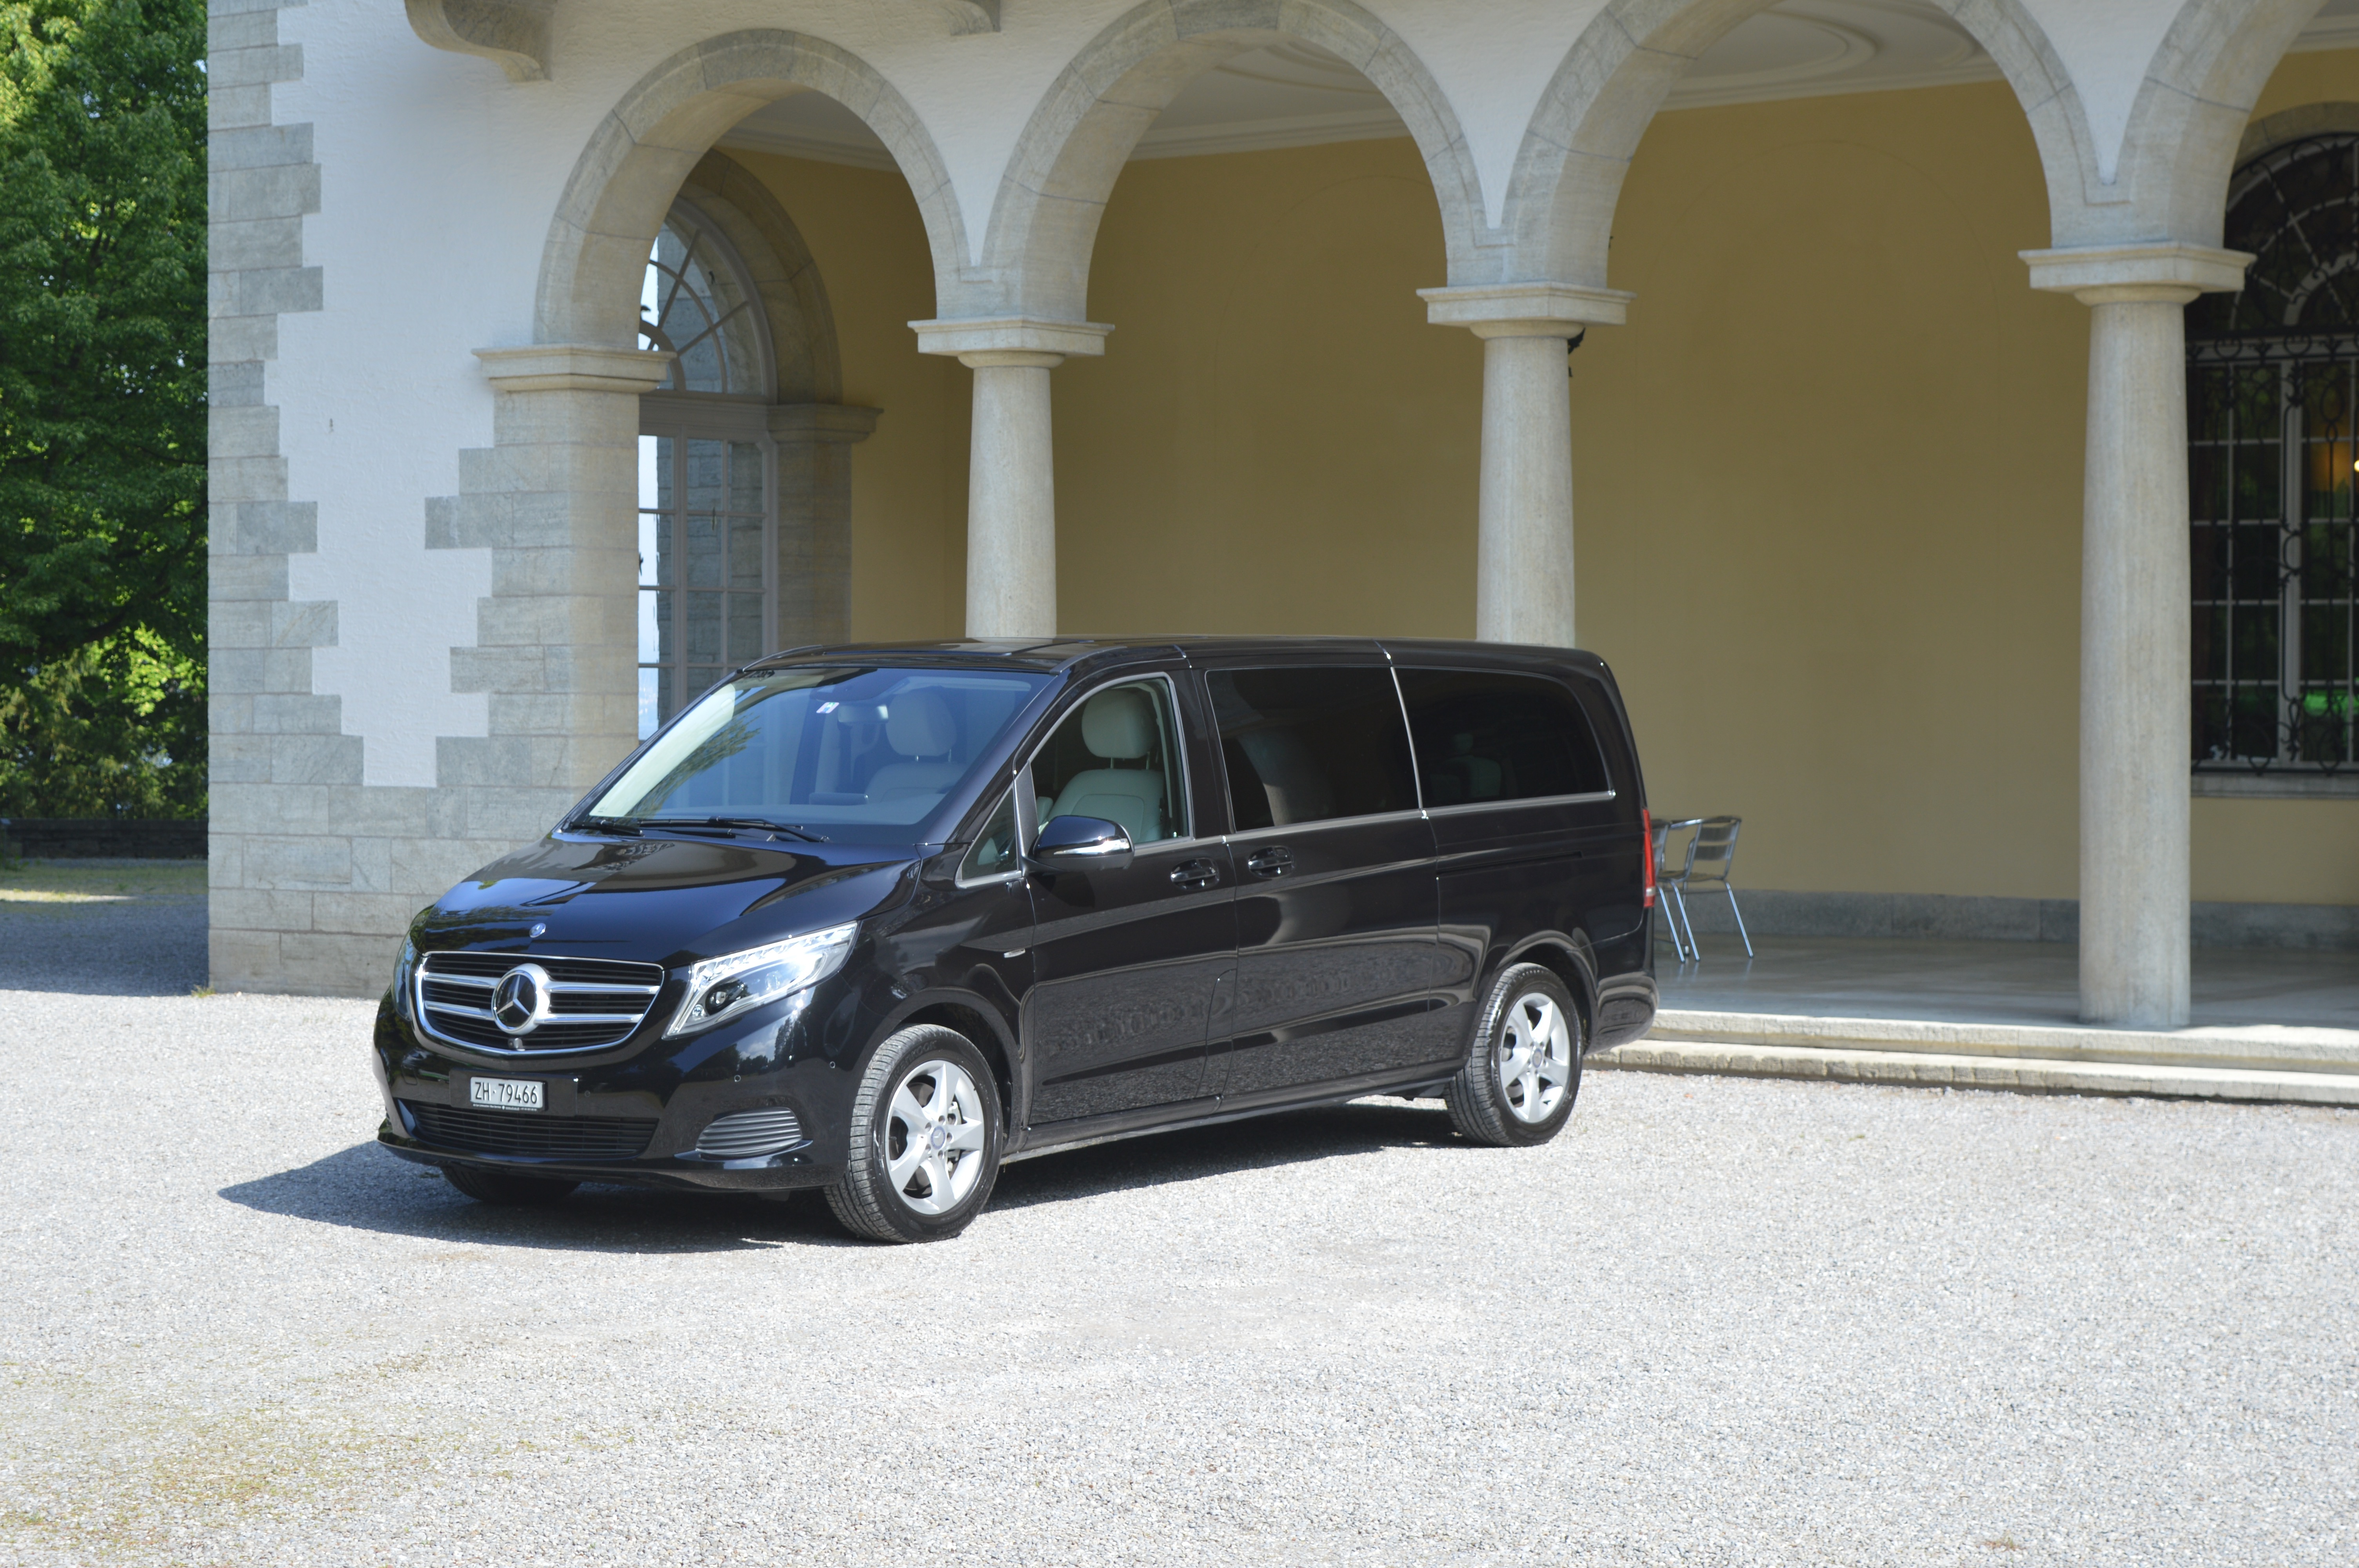 Airport Transfer with VAN